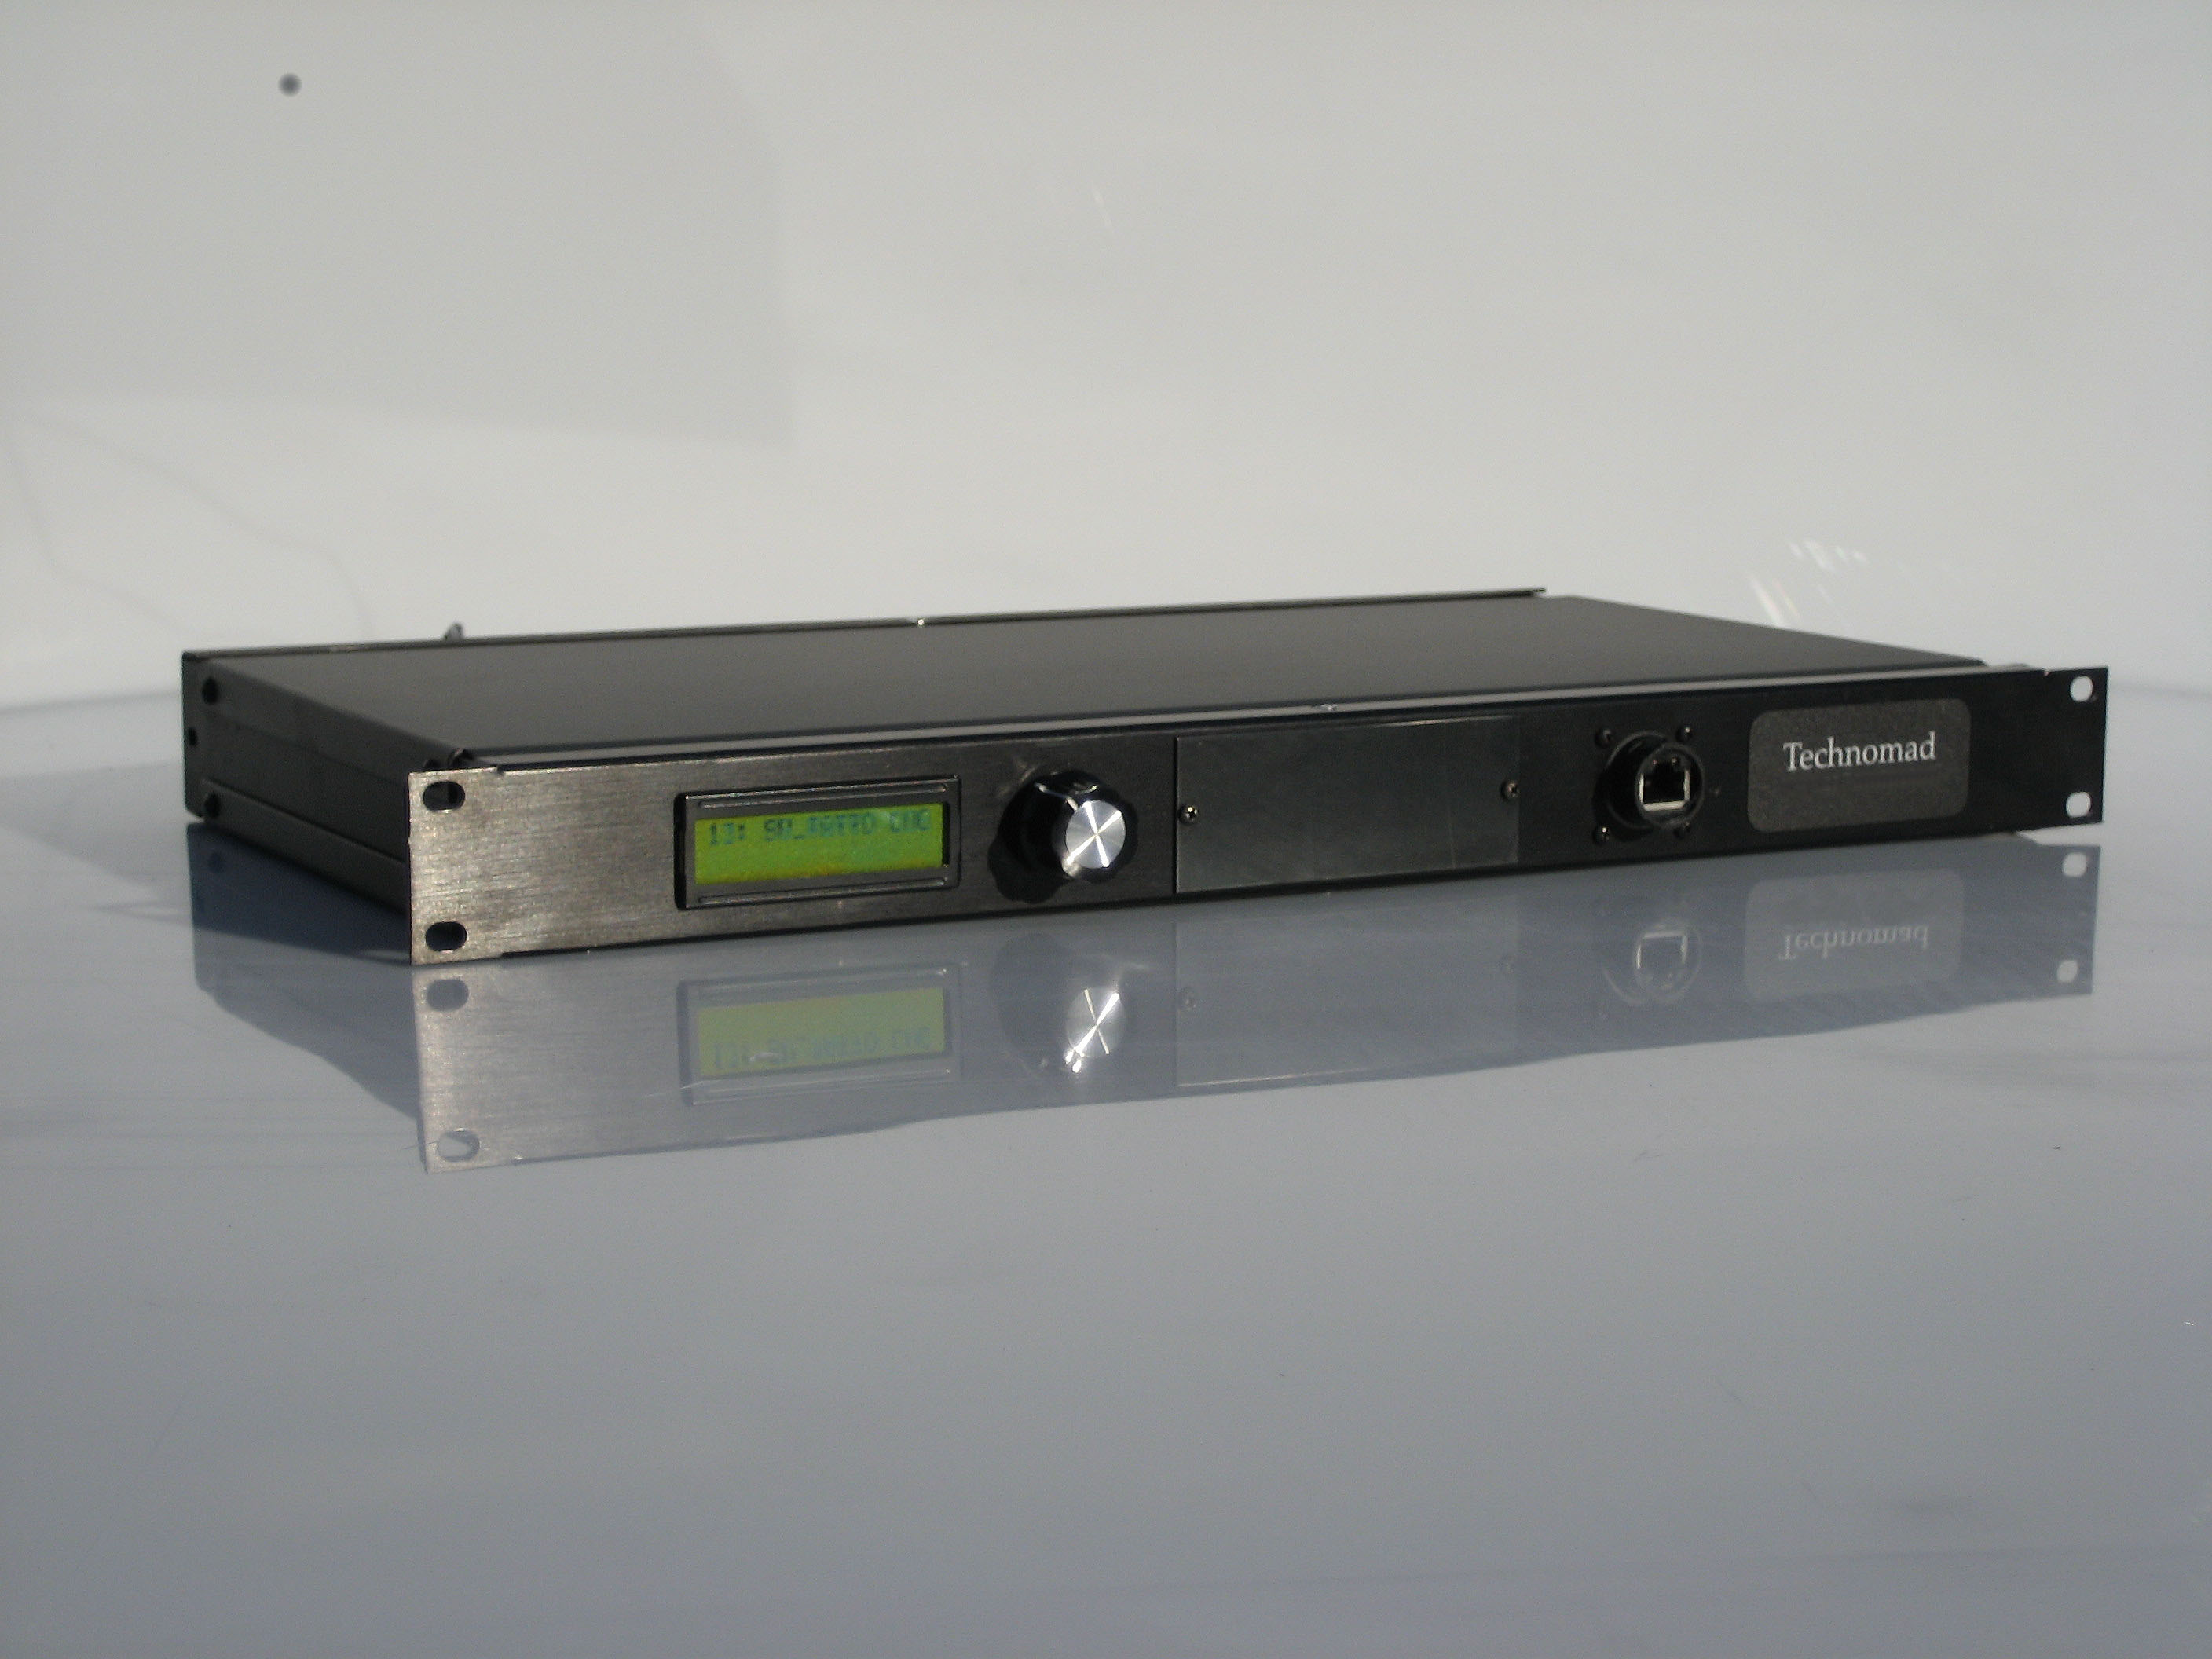 The Technomad Schedulon a rackmount (1U) MP3 player/recorder with a built-in scheduler that can be used in a variety of pro audio and commerical security applications.